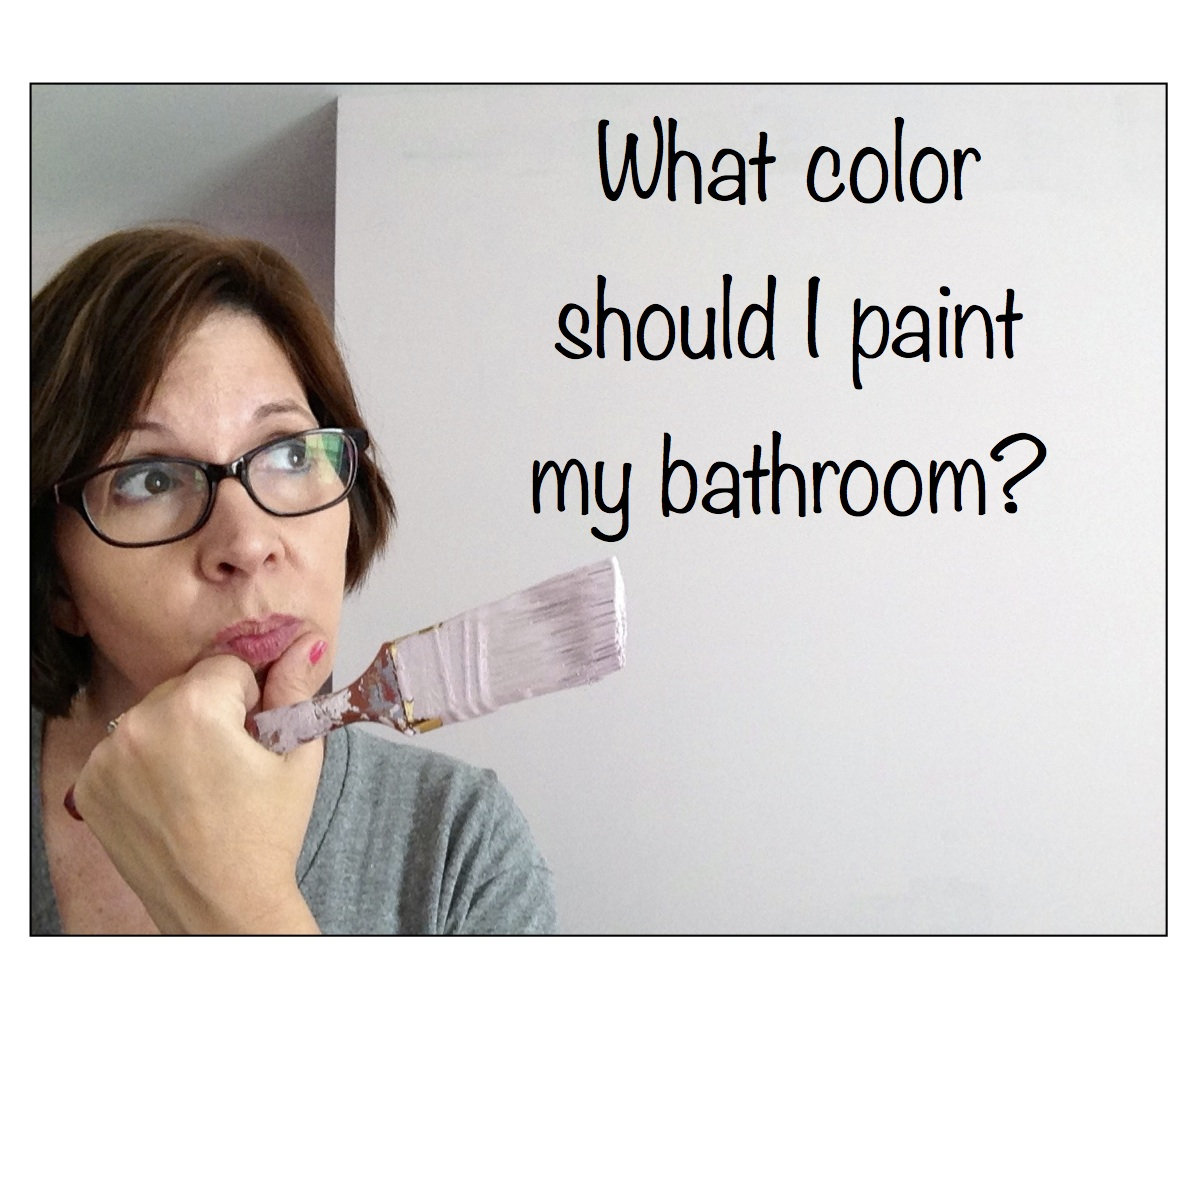 Wonderful Bathroom Addition Ideas Thin Gray Bathroom Vanity Lowes Flat Granite Bathroom Vanity Top Cost Brushed Copper Bathroom Light Fixtures Young Top 10 Bathroom Faucet Brands SoftAffordable Master Bathroom Ideas What Color To Chose For Your Bathroom When You Have Ugly Tile ..